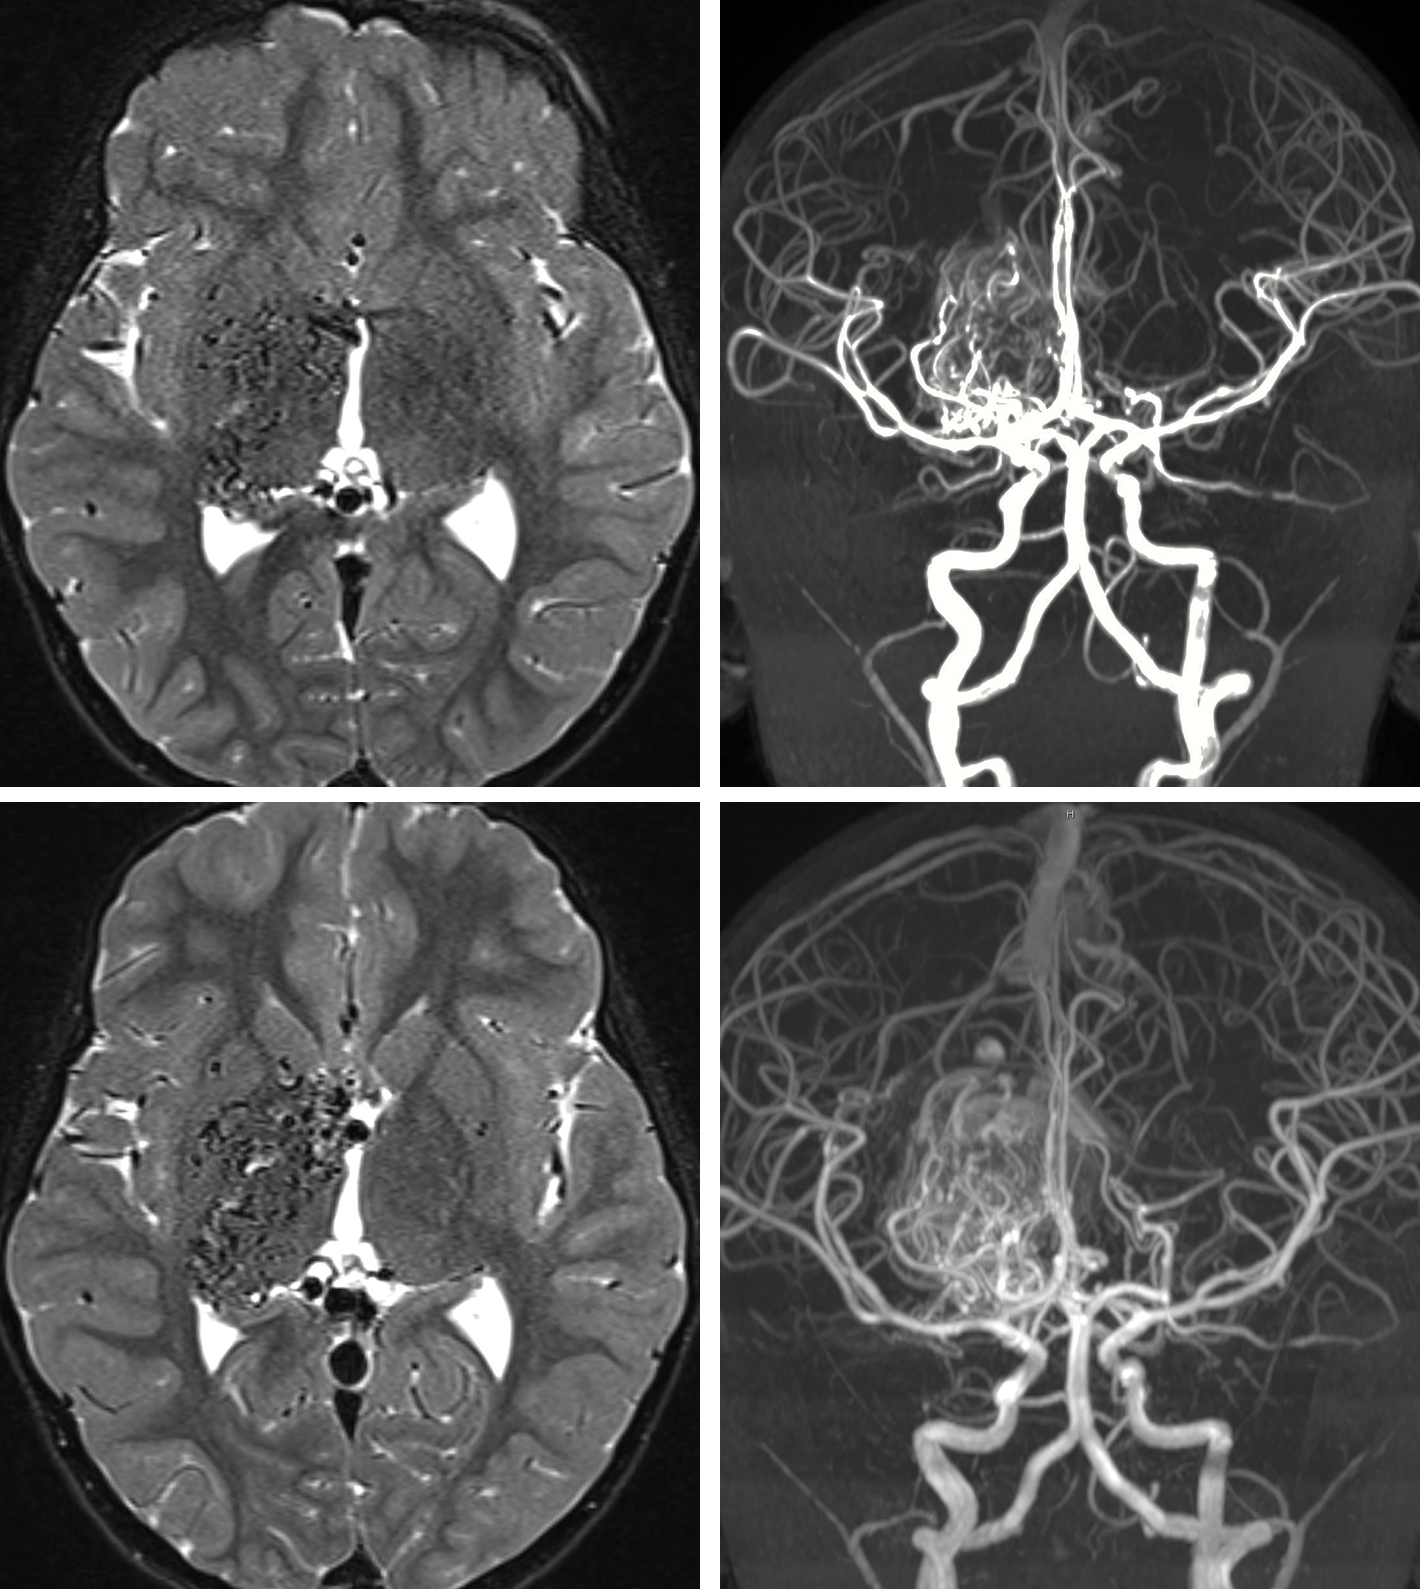 Figure 1: This 6 year-old boy demonstrated evolution and enlargement of his deep AVM within 2 years during follow-up. This case emphasizes the dynamic nature of pediatric AVMs. The top and bottom row MR images were obtained at 4 and 6 years of age, respectively.